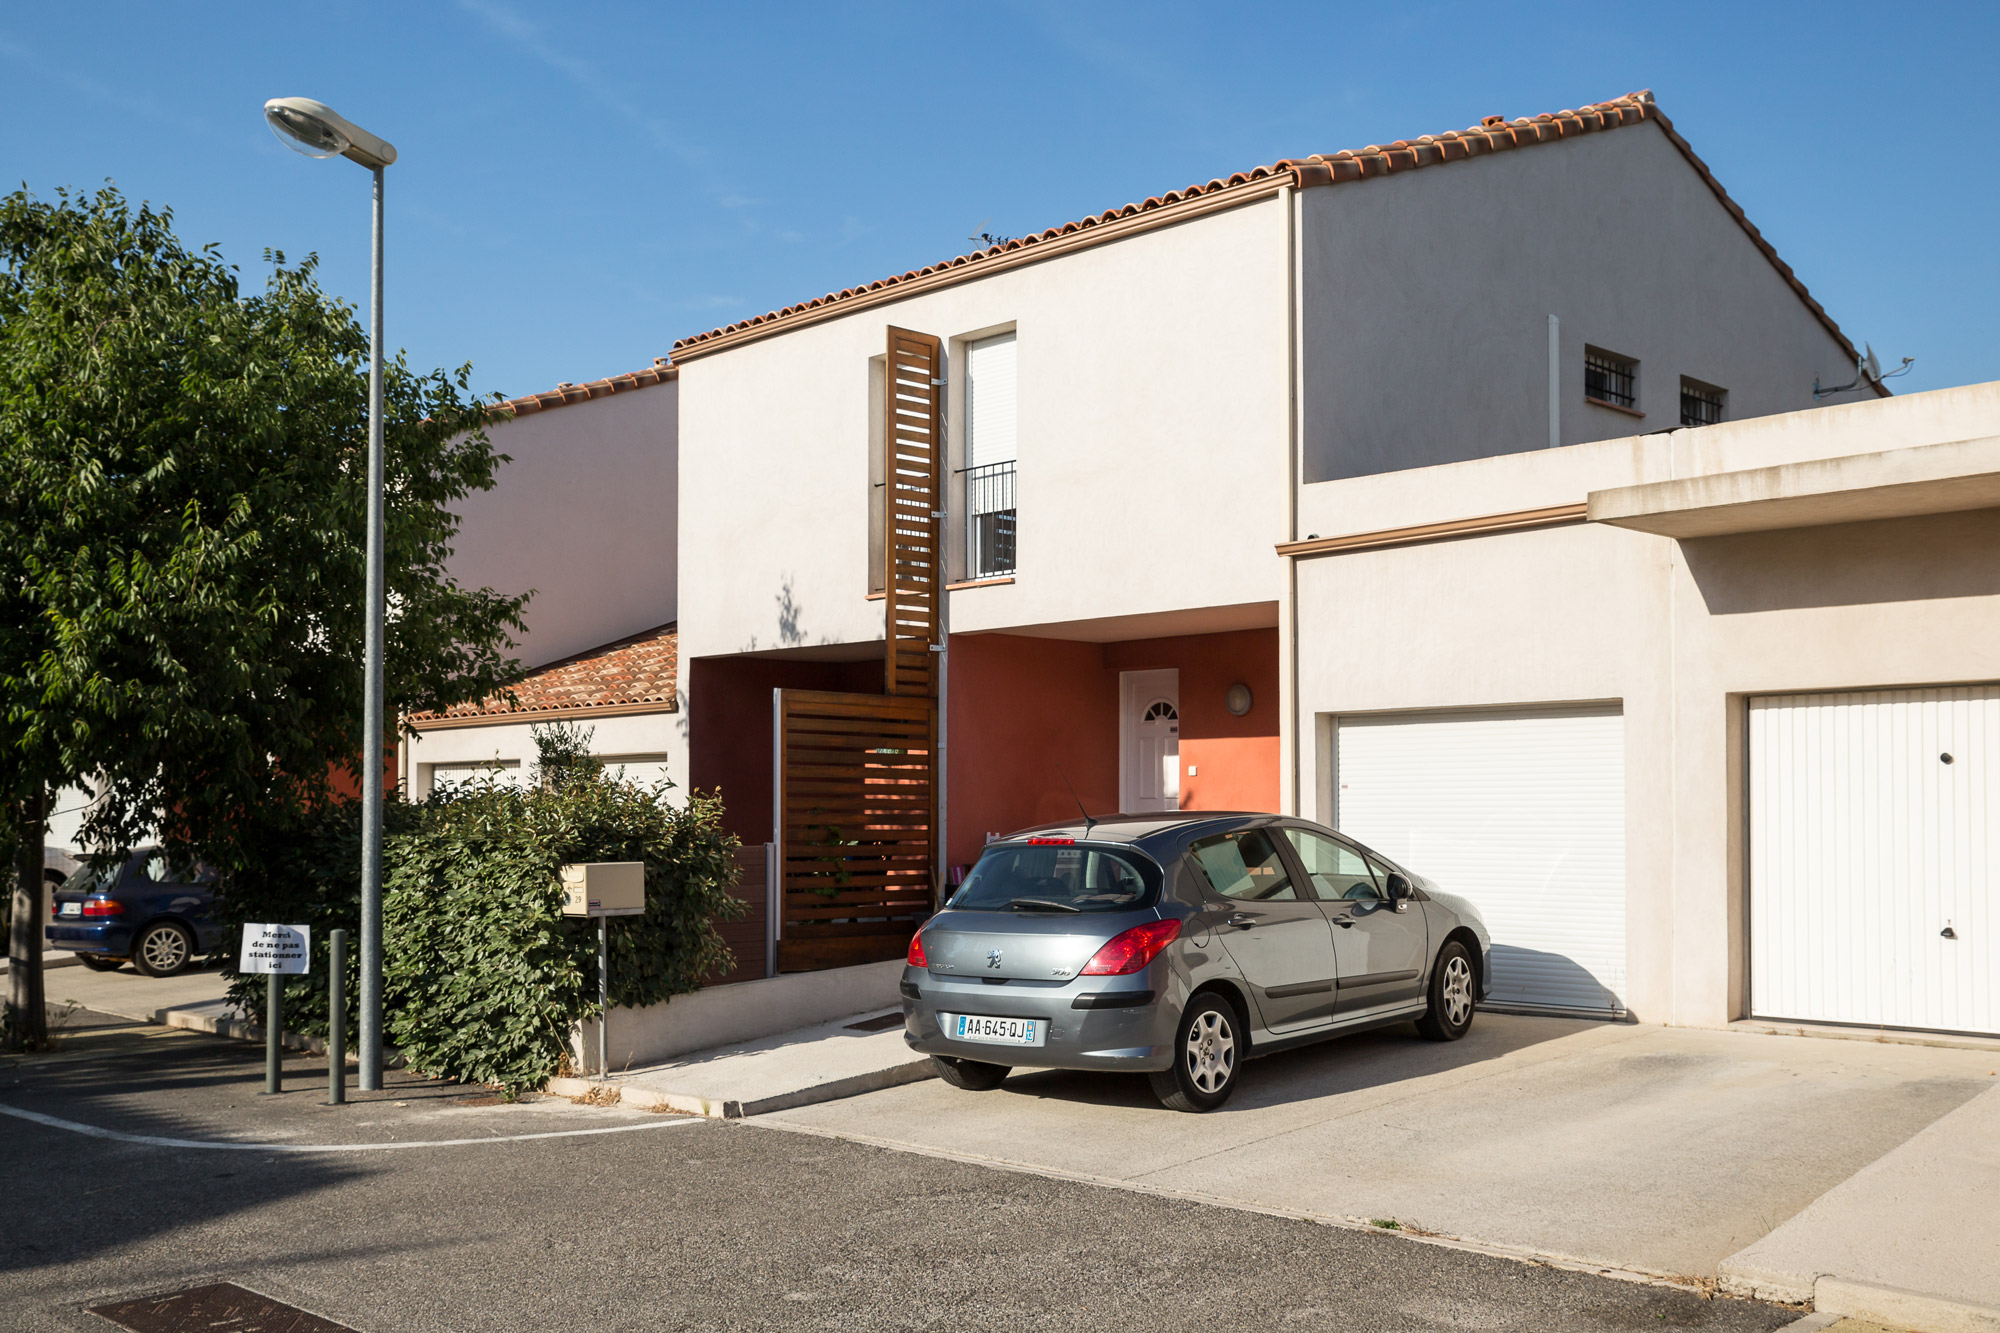 achat-location-immobilier